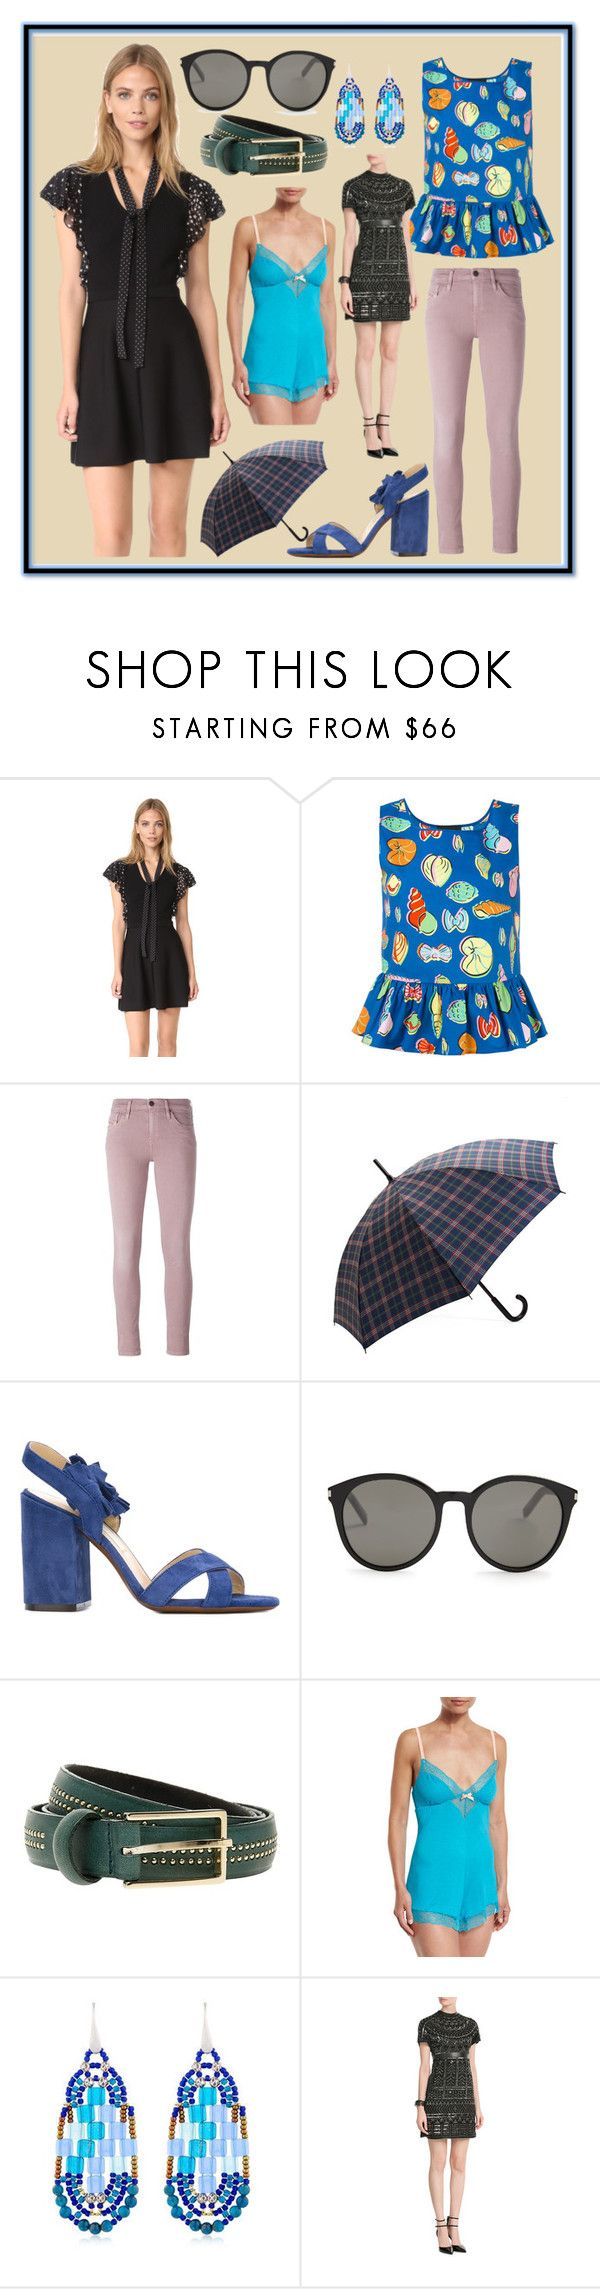 """""""We Love New Fashion"""" by cate-jennifer ❤ liked on Polyvore featuring RED Valentino, Boutique Moschino, Diesel, Brooks Brothers, L'Autre Chose, Yves Saint Laurent, Paul & Joe, Eberjey, Ziio and Lynn Ban"""